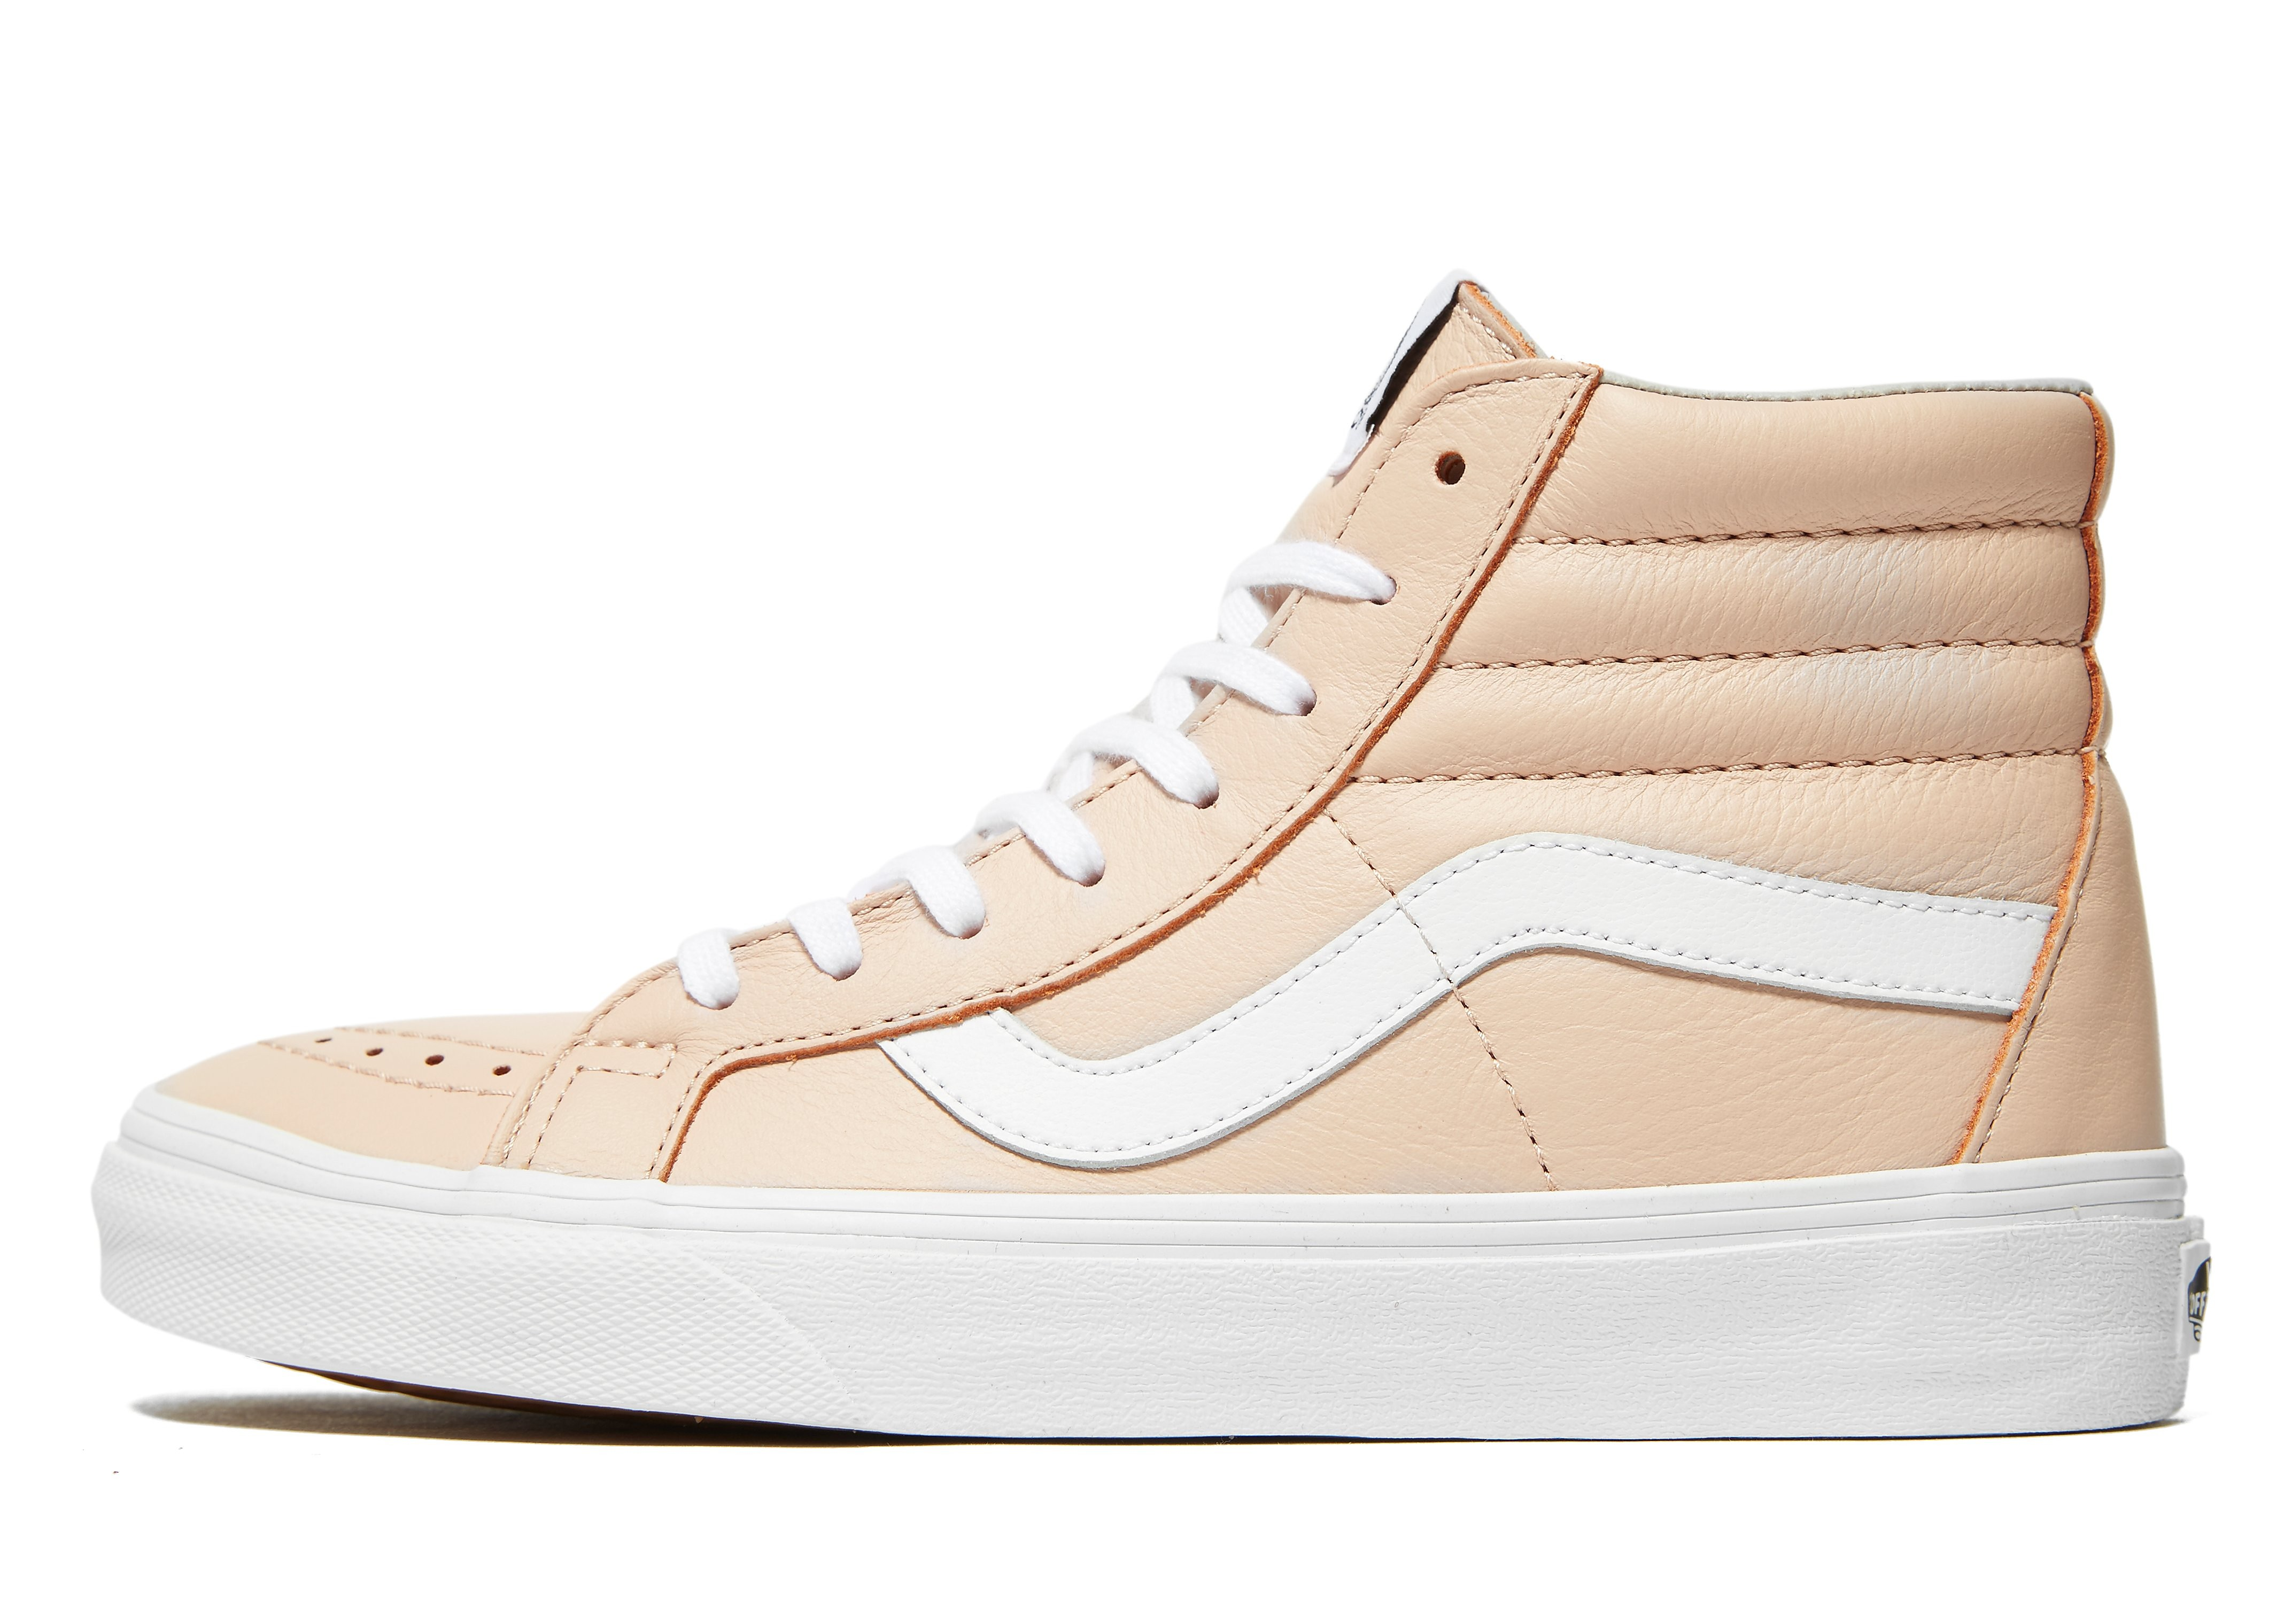 Vans Sk8-Hi Leather Women's